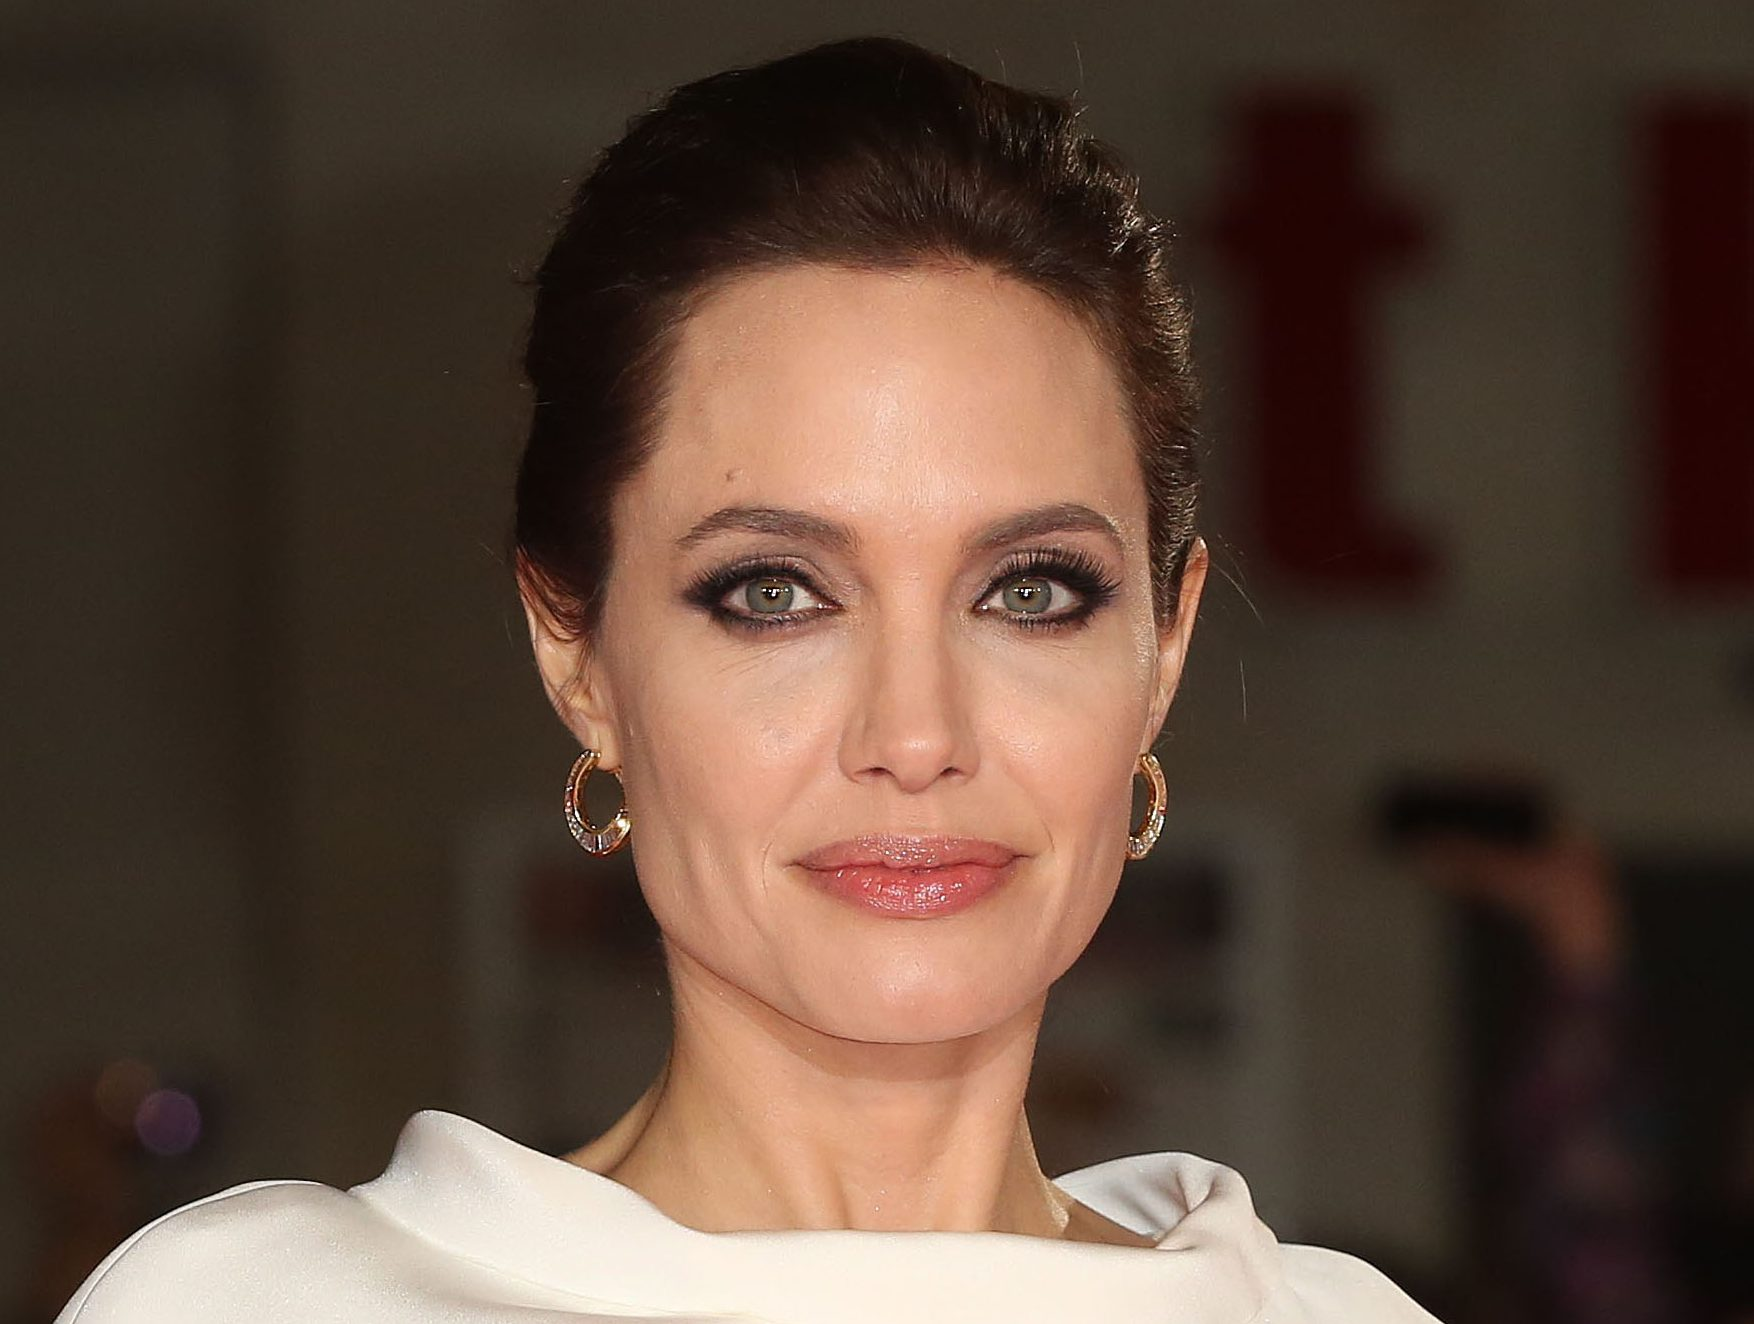 Things got bad: Jolie on split